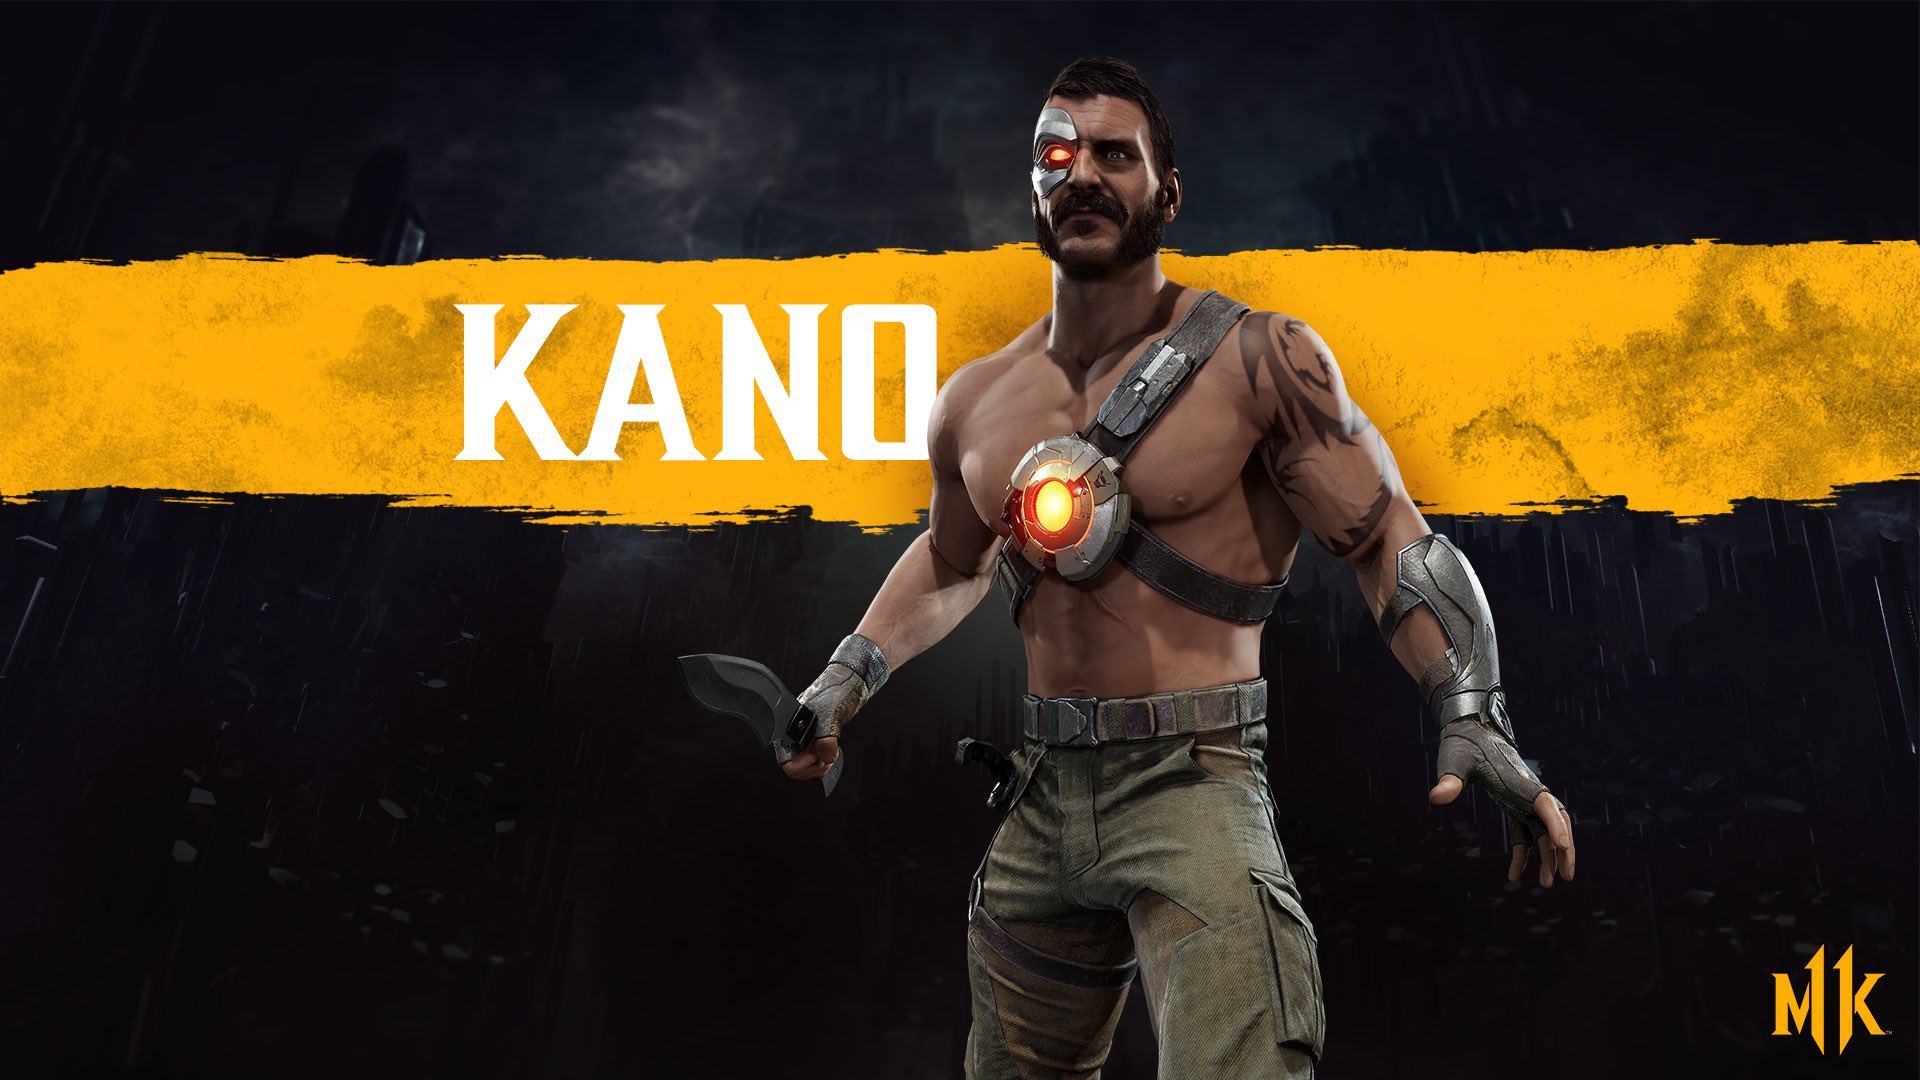 Mortal Kombat 11 wallpaper - Kano